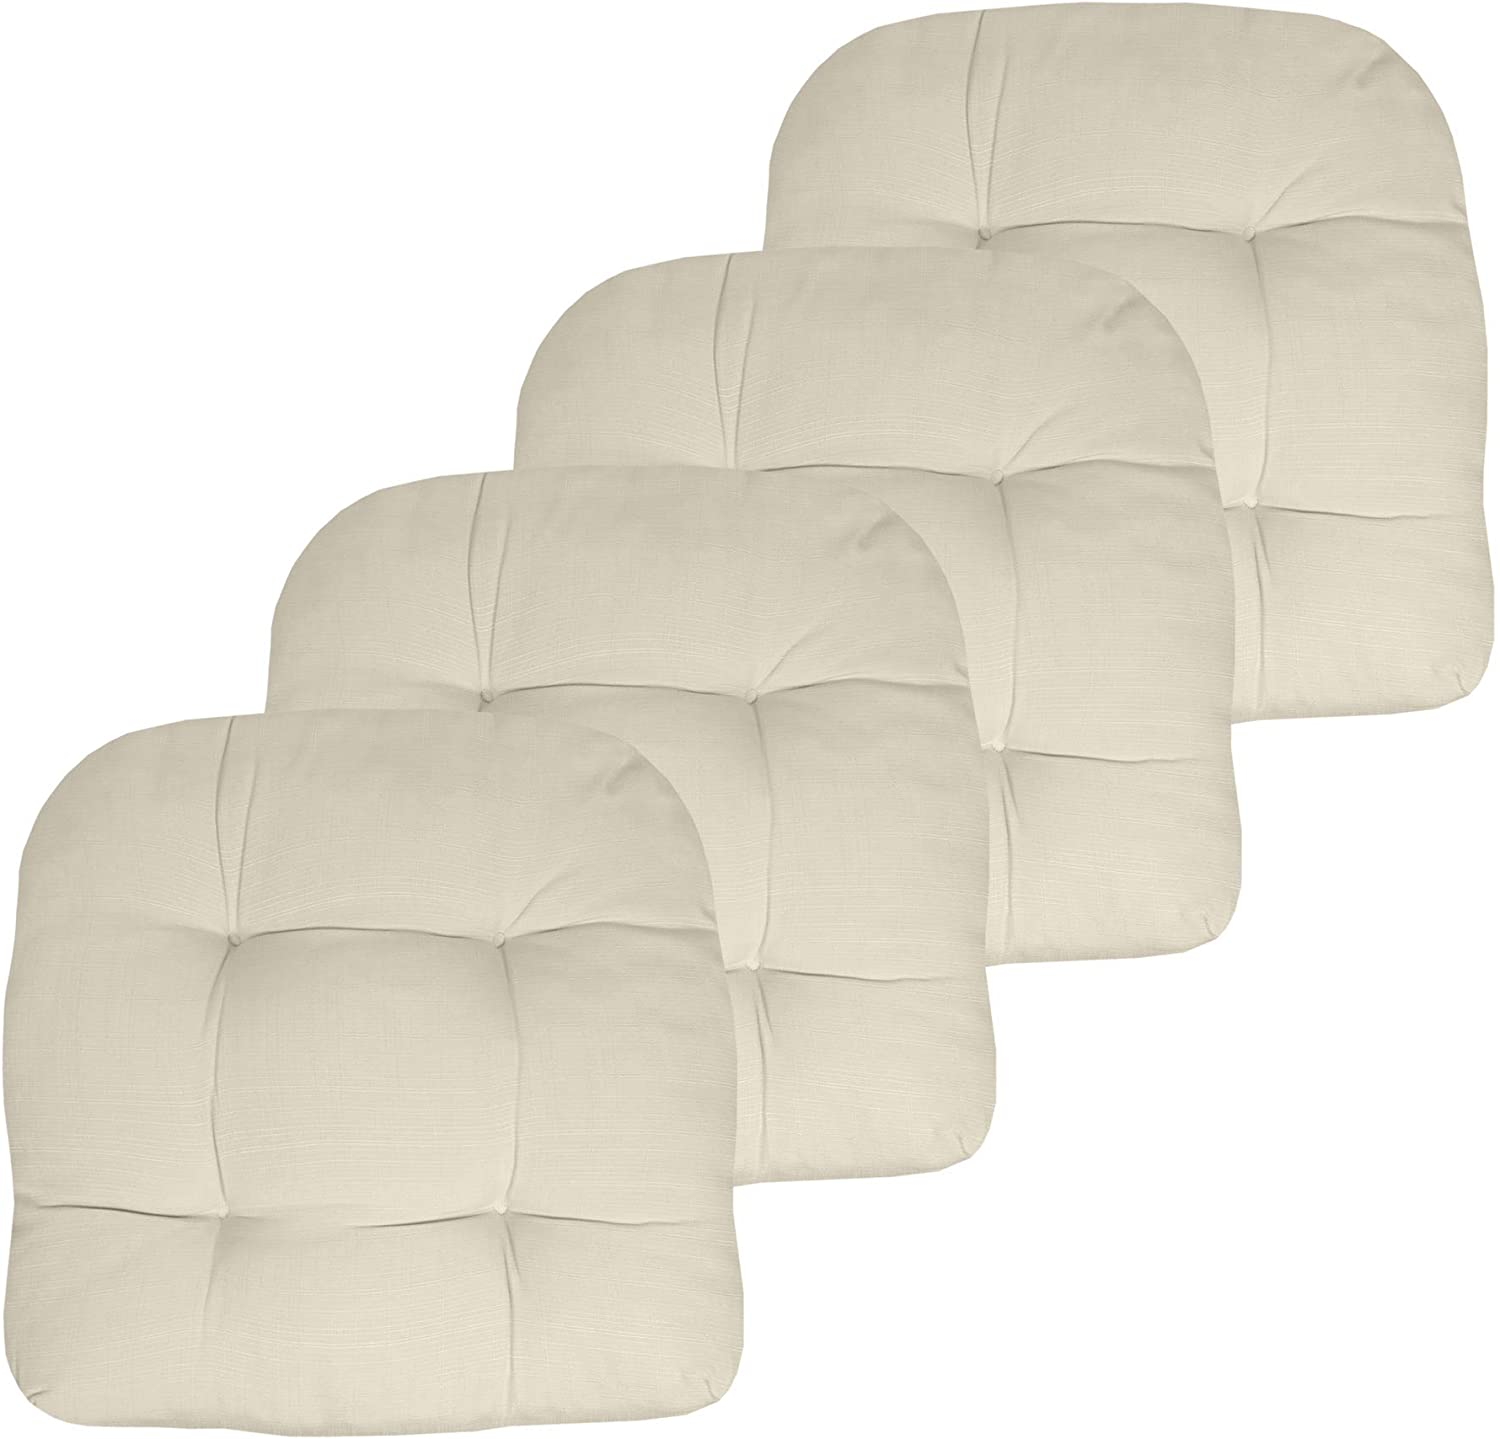 Sweet Home Collection Patio Cushions Outdoor Chair Pads Premium Comfortable Thick Fiber Fill Tufted 19